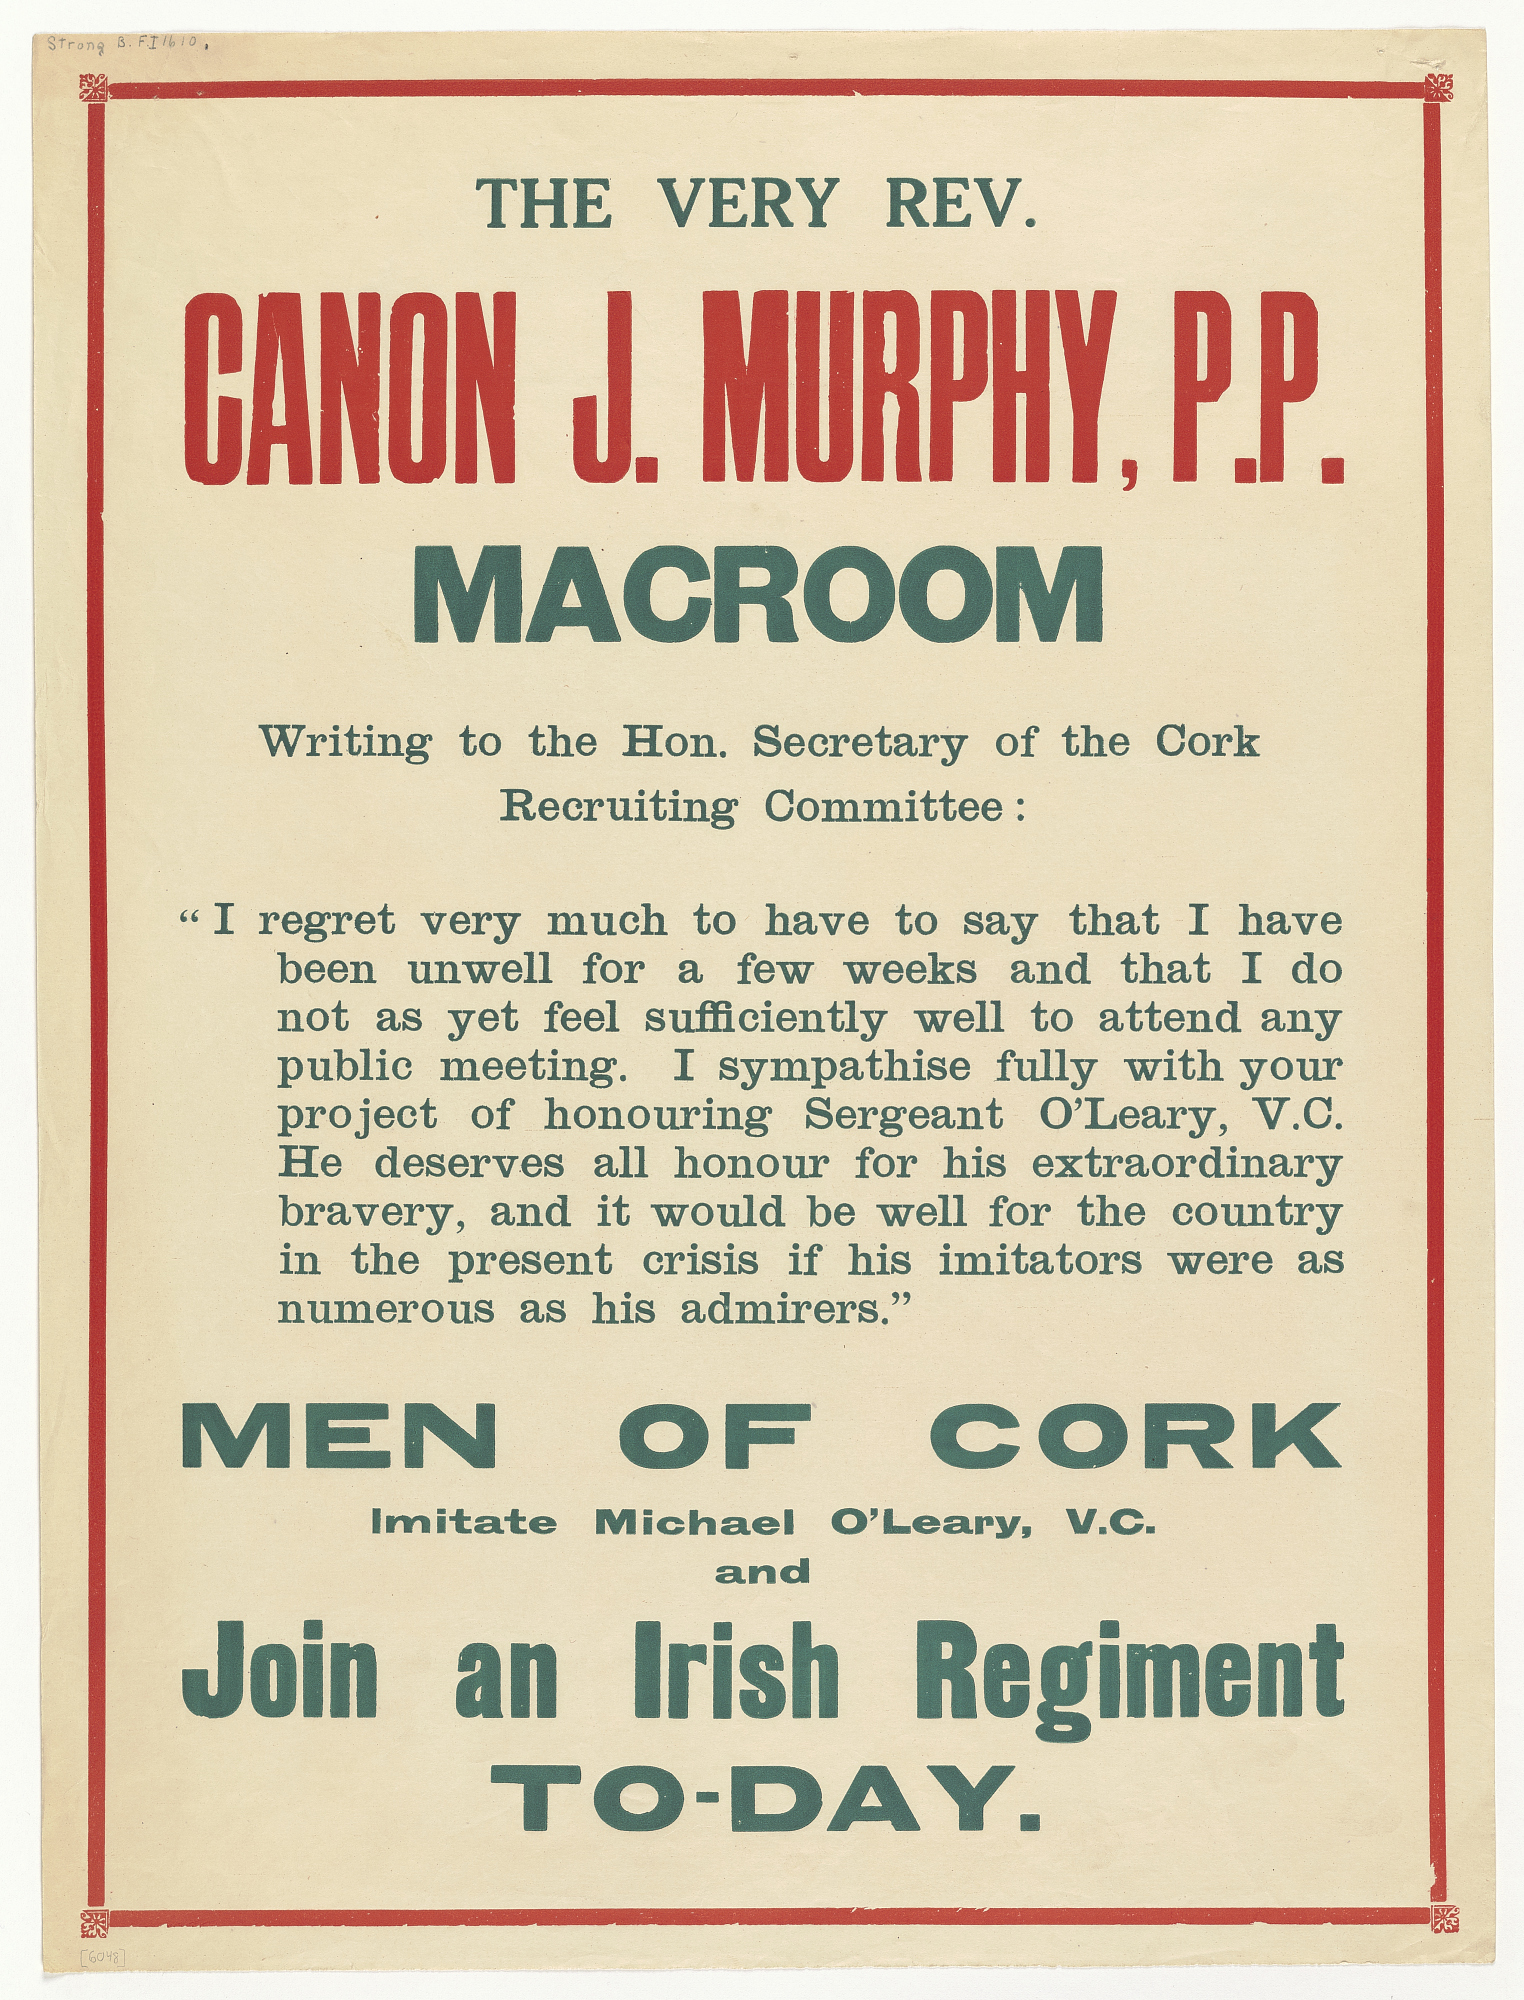 The Very Rev. Canon J. Murphy, P.P. Macroom ... Men of Cork Imitate Michael O'leary, V.C. And Join an Irish Regiment To-Day